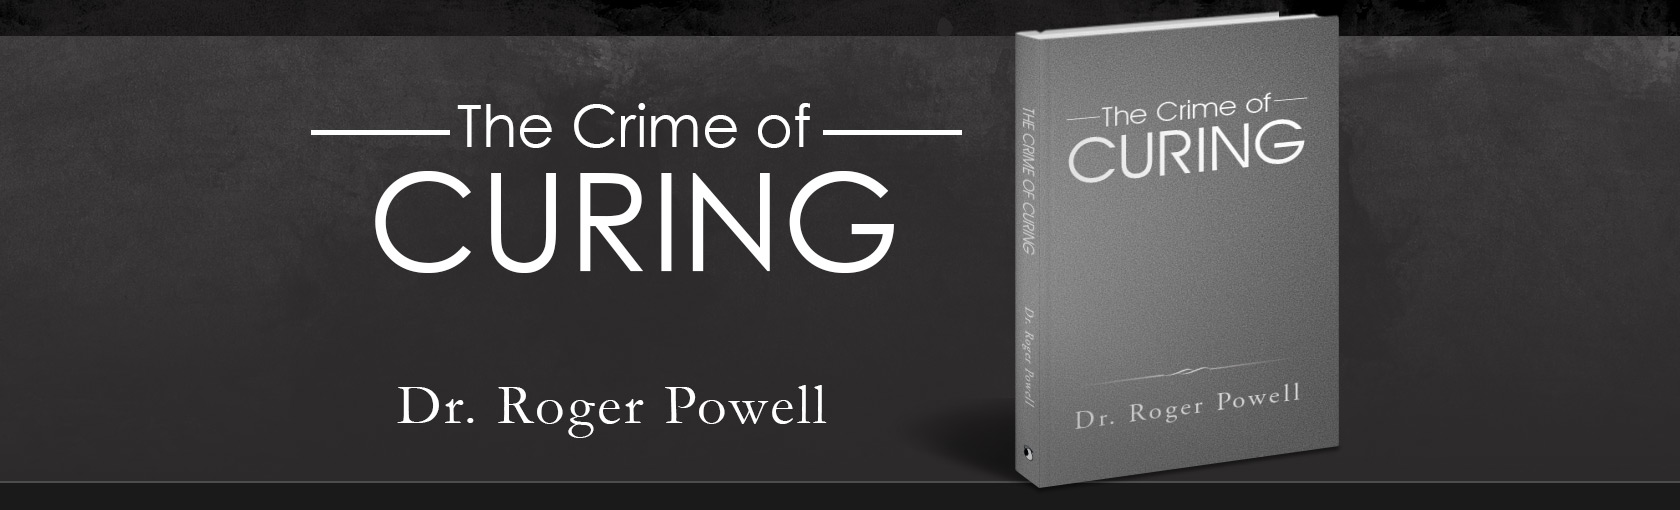 The Crime of Curing